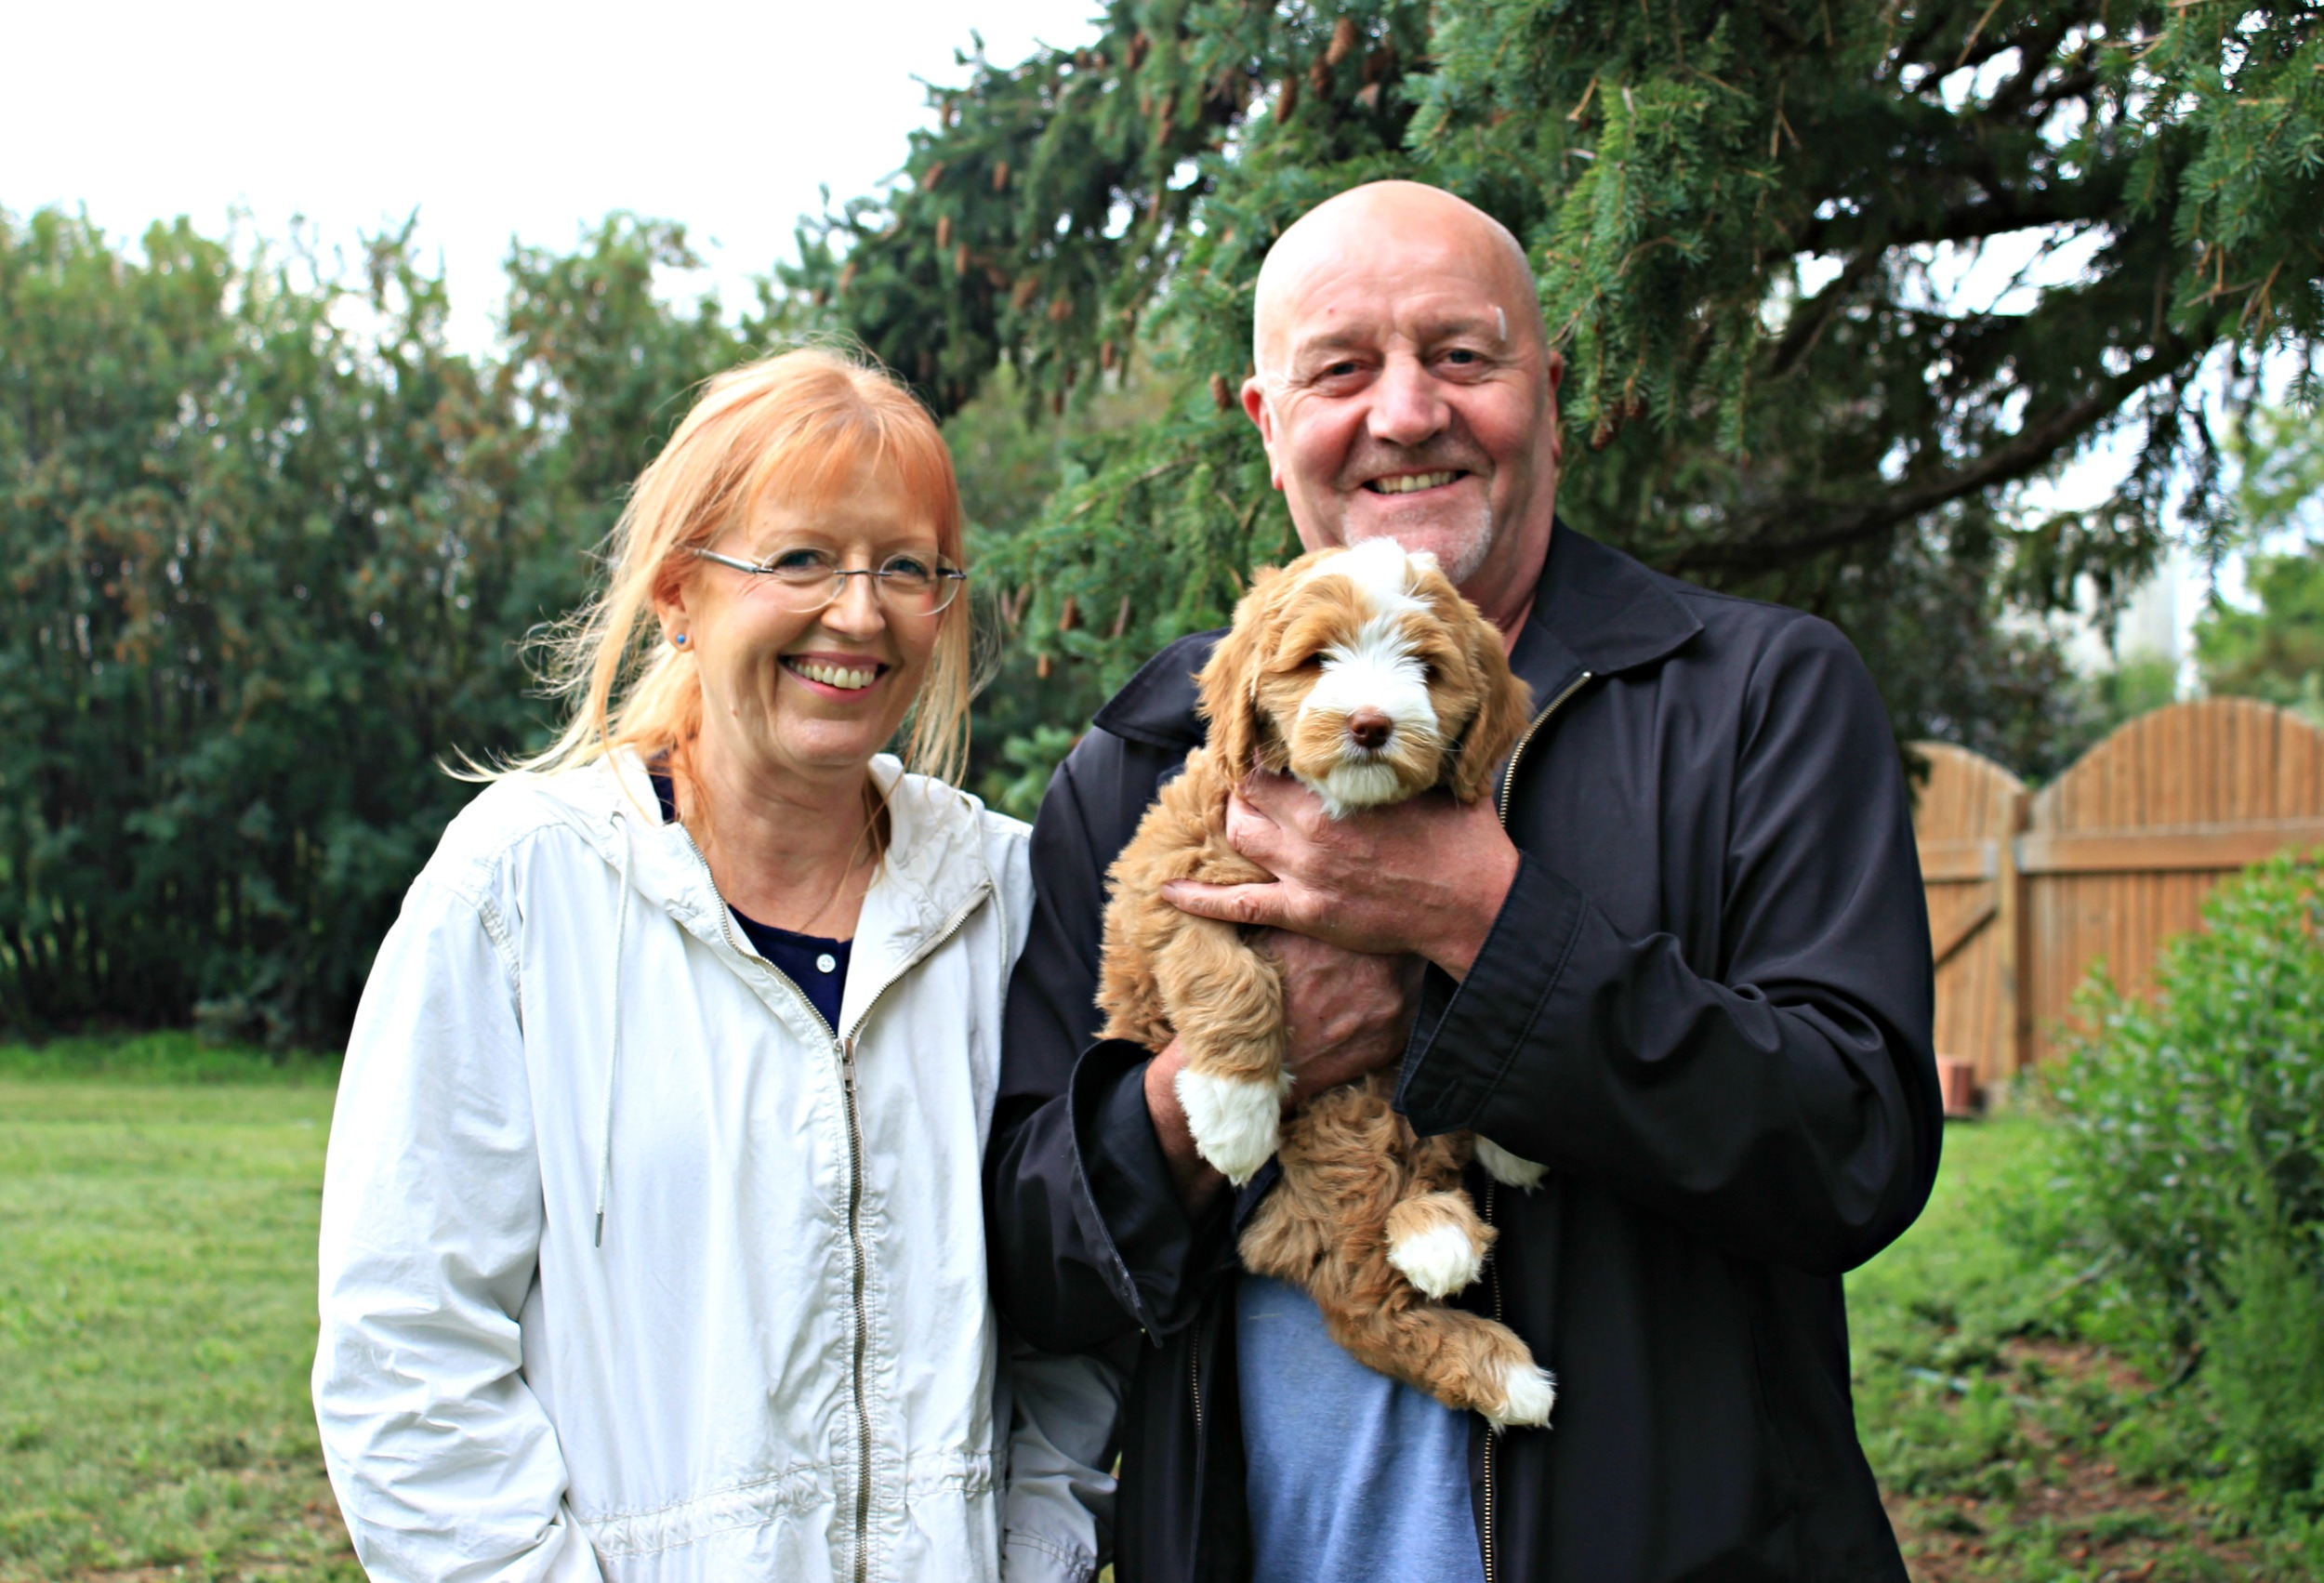 Congratulations to the Slaught/Spence Family and to Molly for finding her forever home!